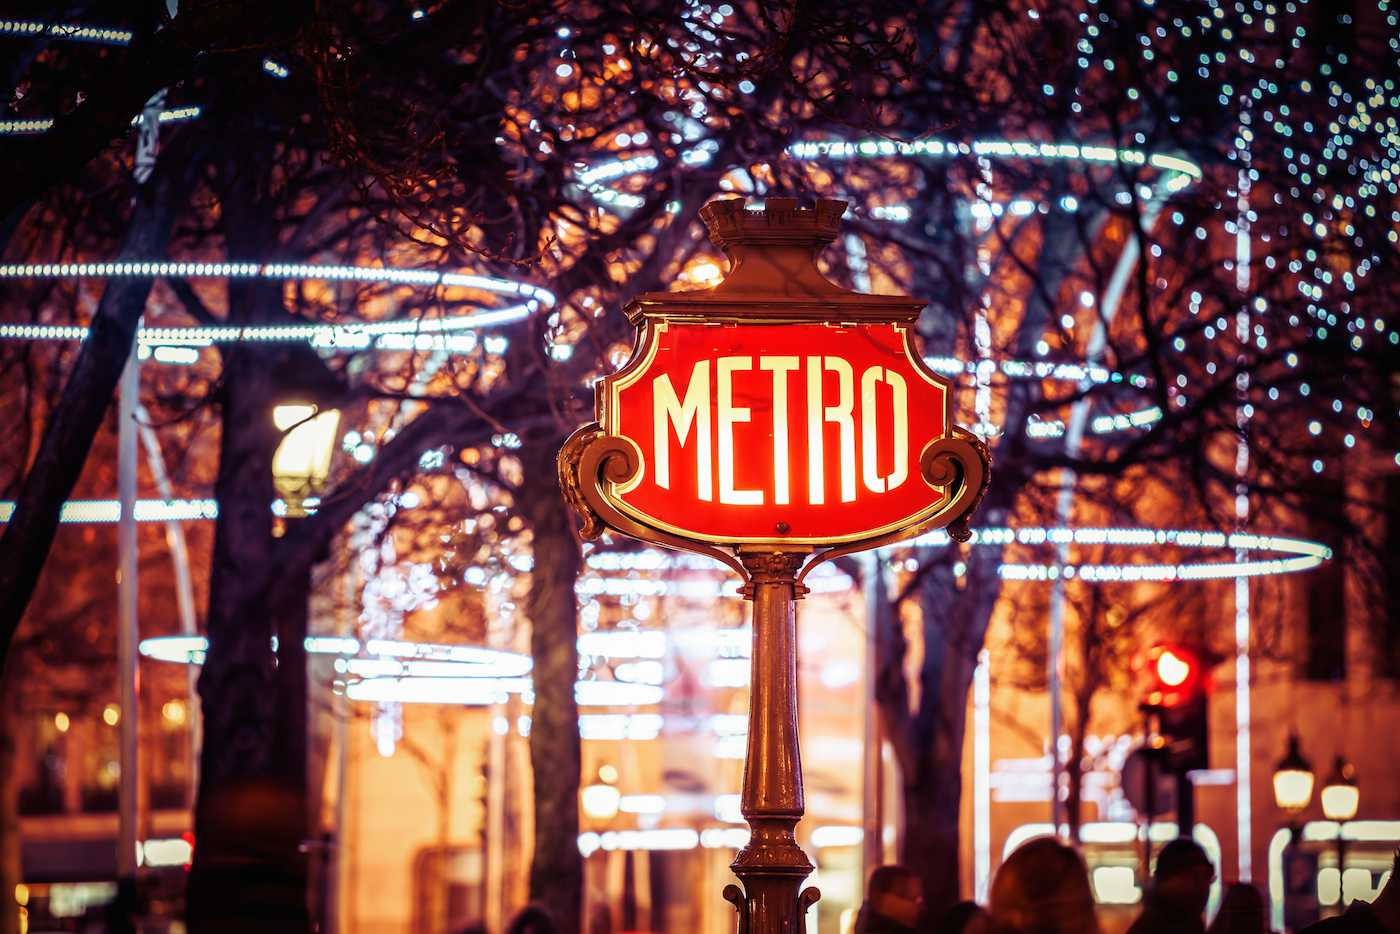 Christmas decorations in Paris are always festive.